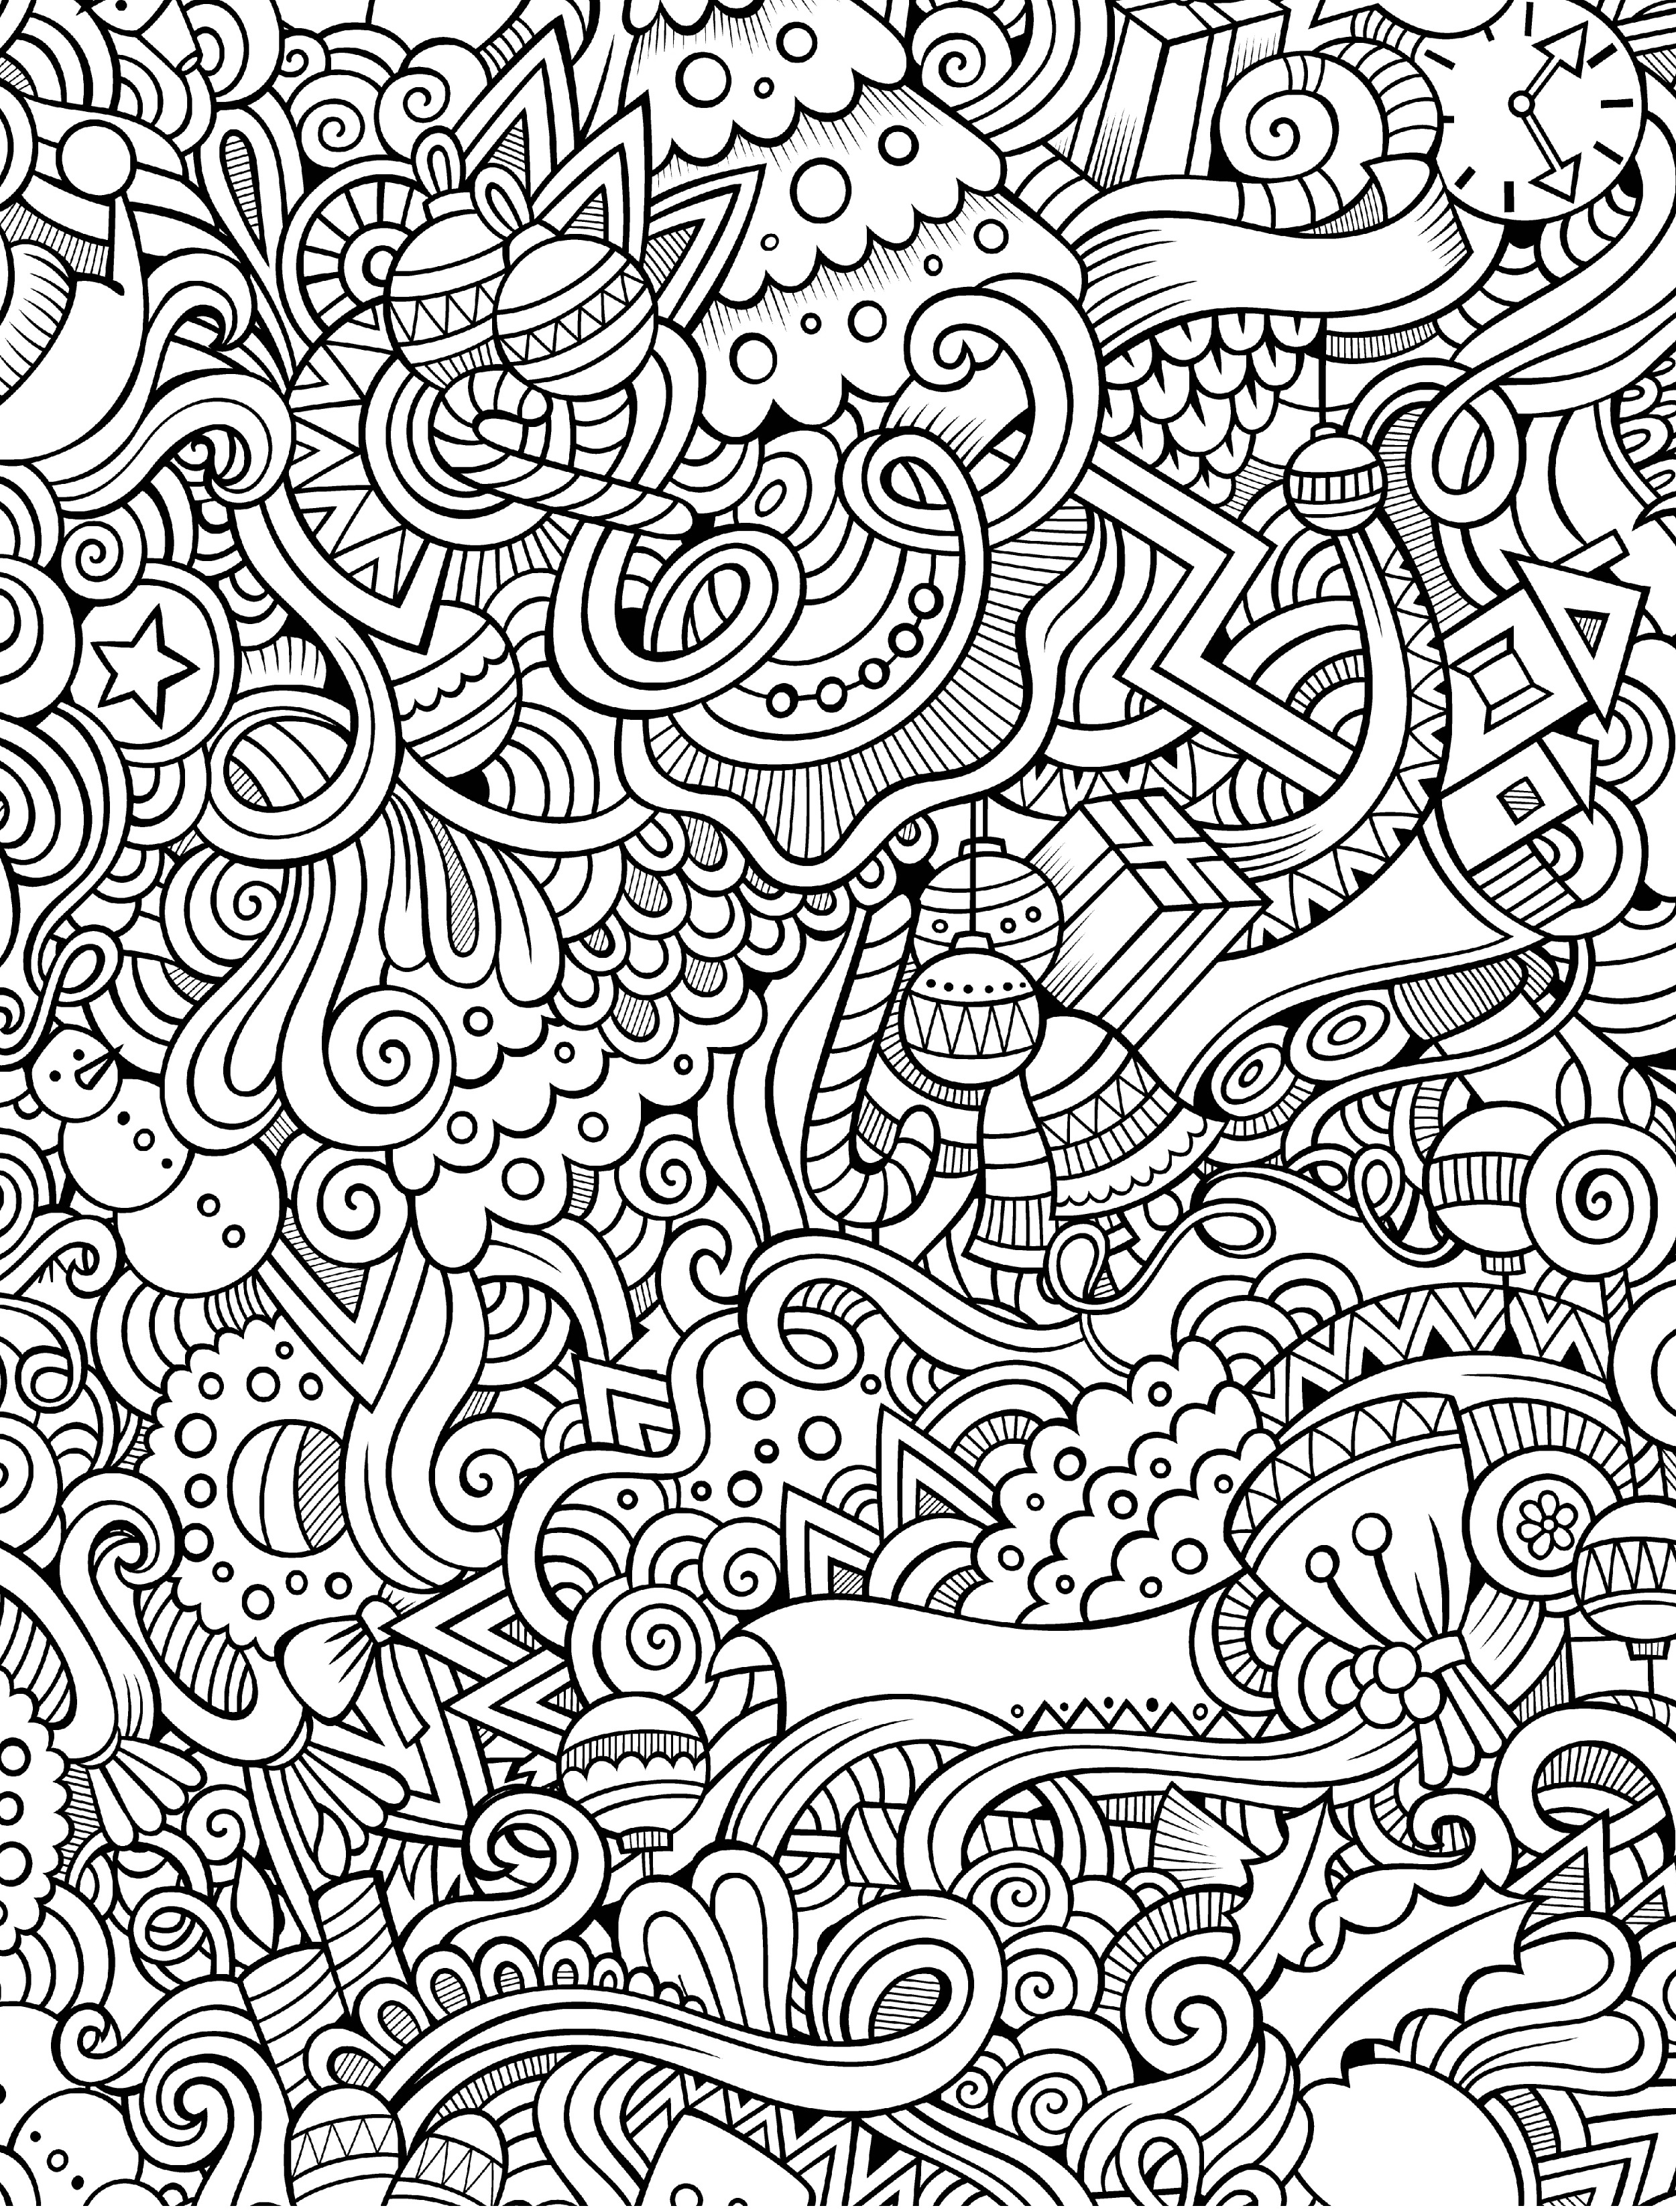 Nerd Coloring Pages